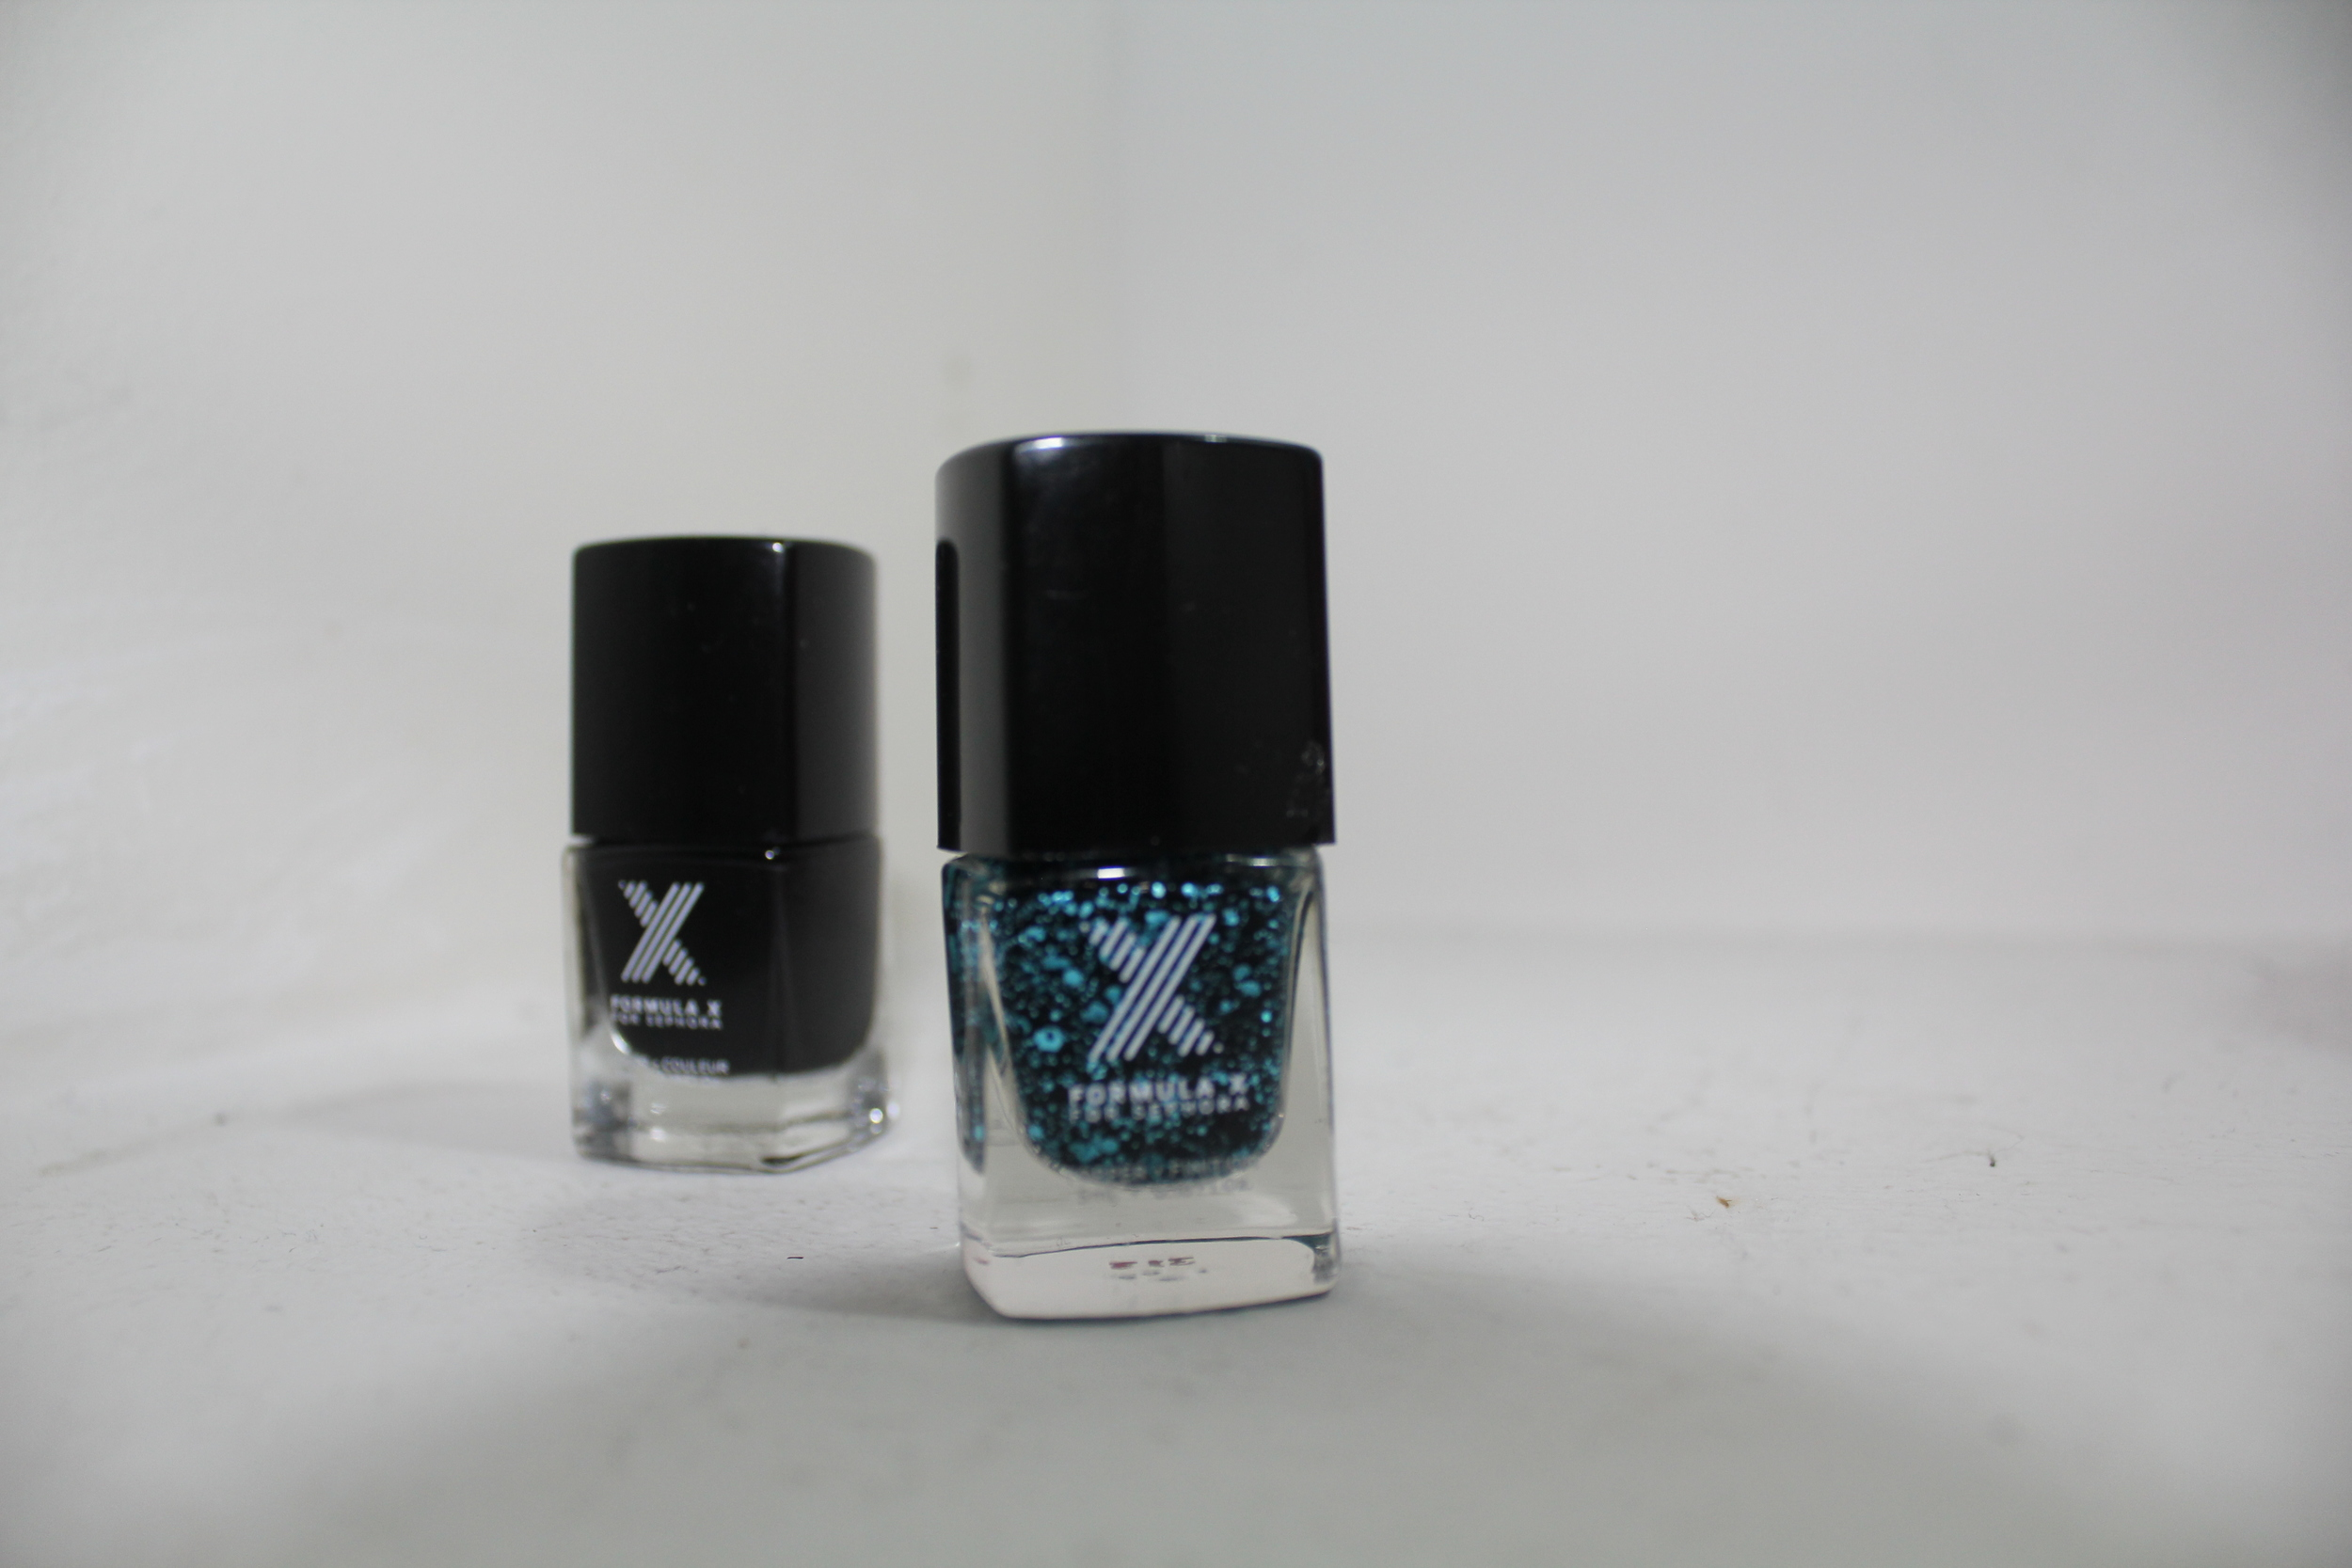 Formula X by Sephora nail polishes